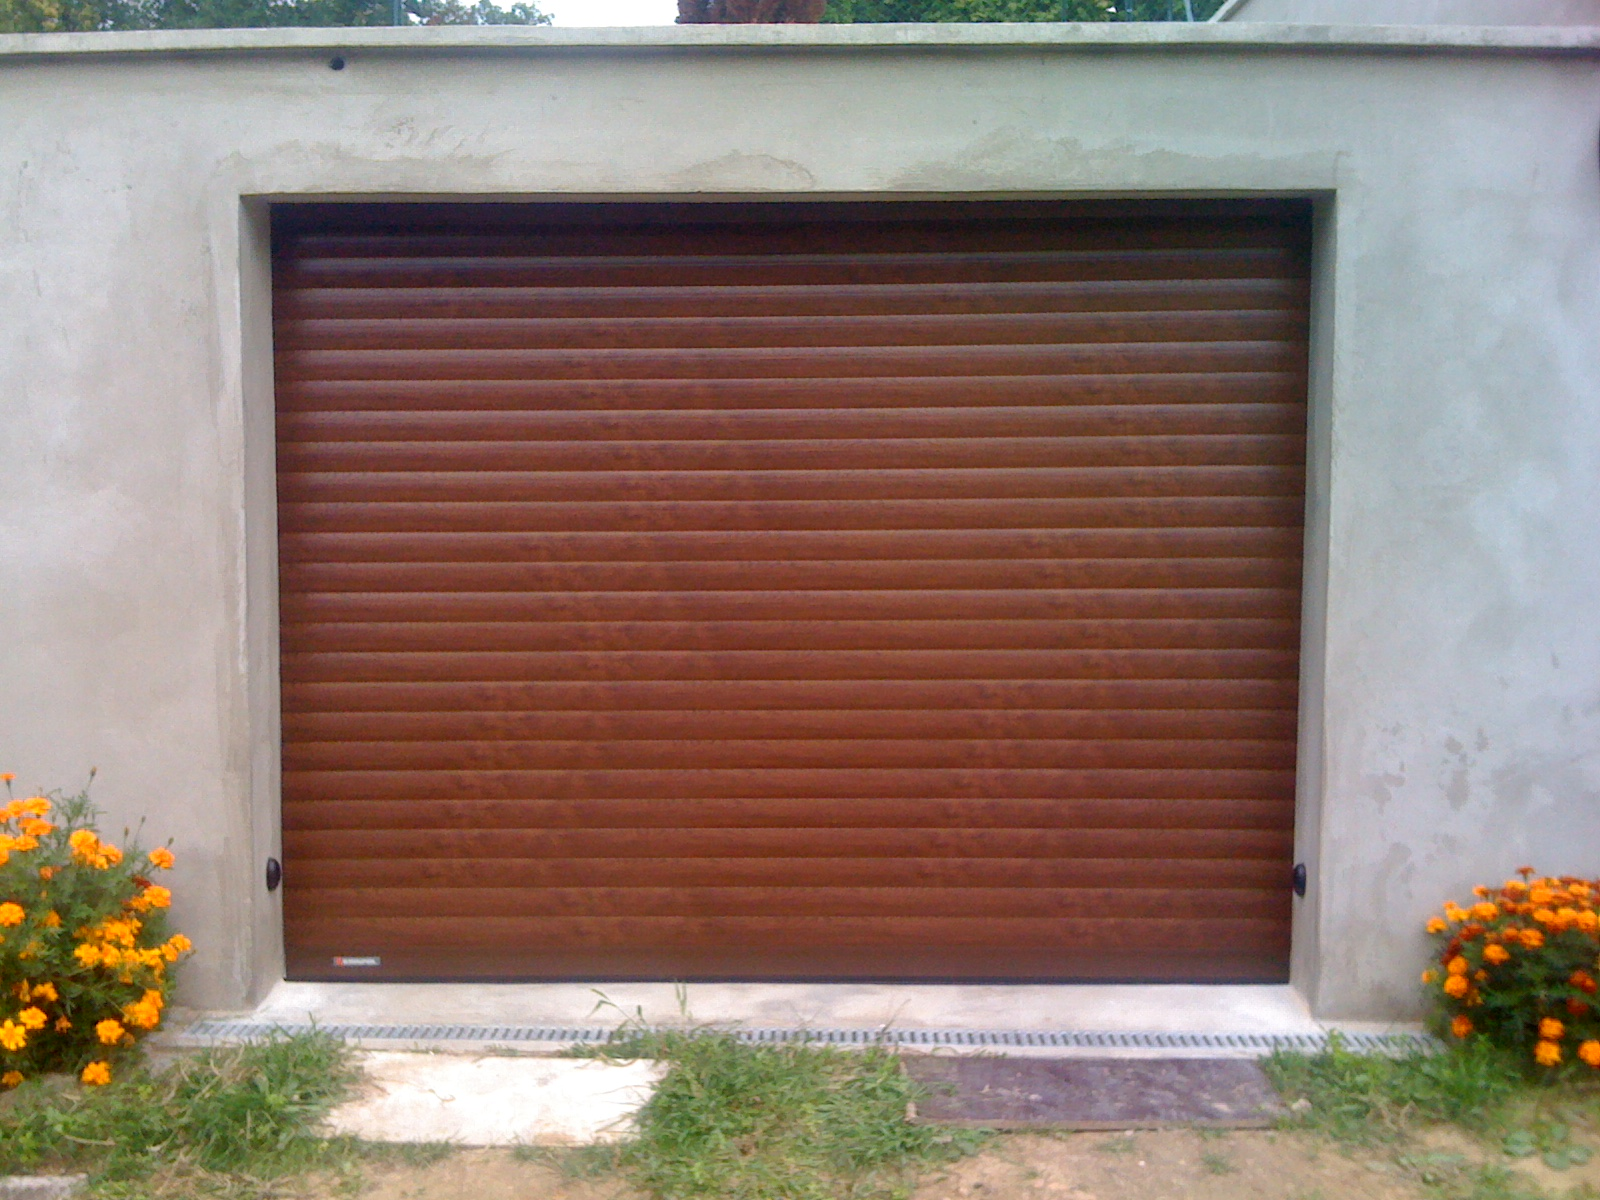 Porte garage enroulable ton bois 1 centpourcentpose for Porte de garage enroulable isolante